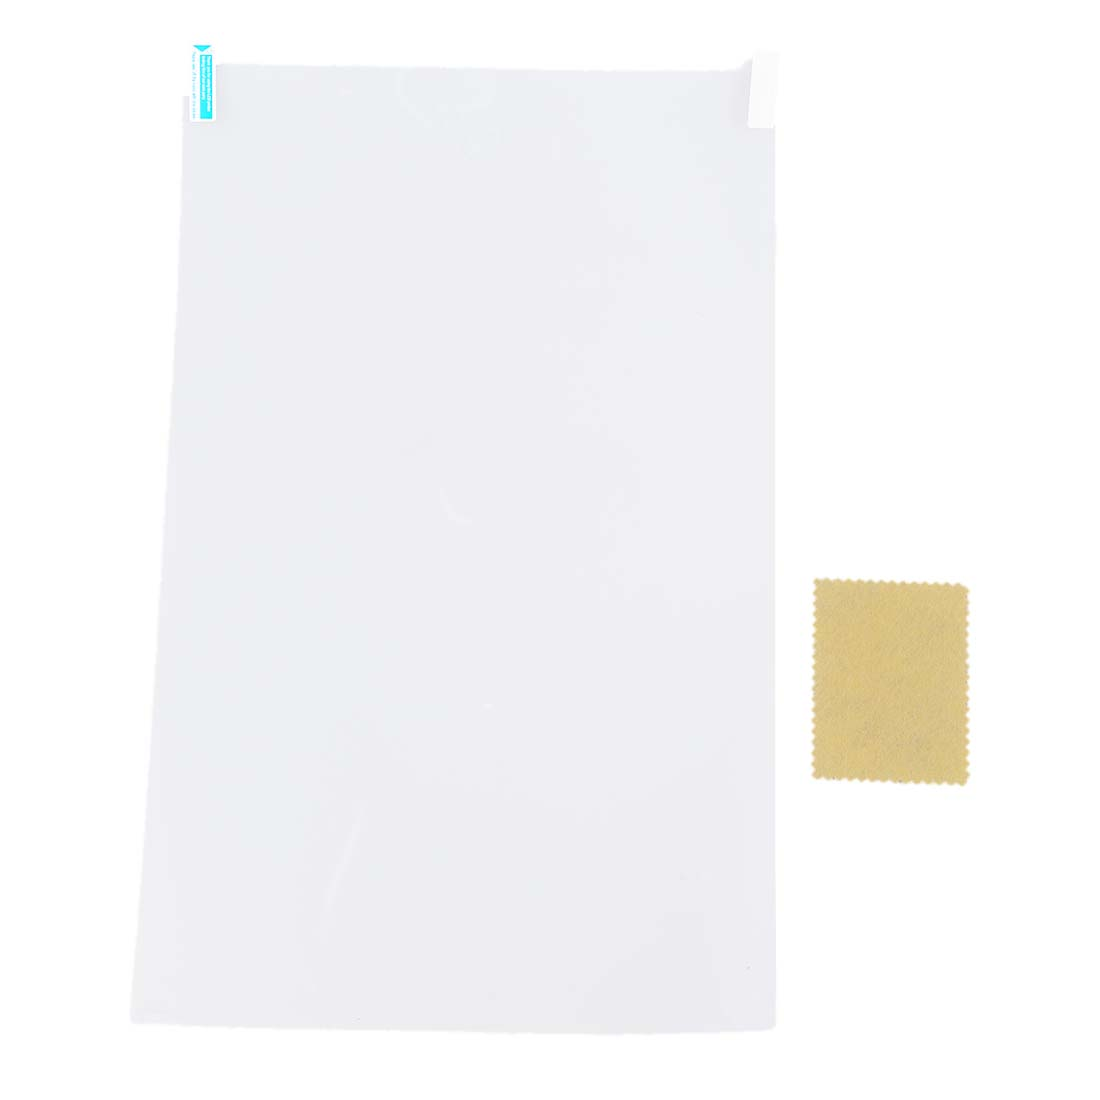 17 Inch 17' Wide LCD Screen Guard Protector For Laptop Notebook